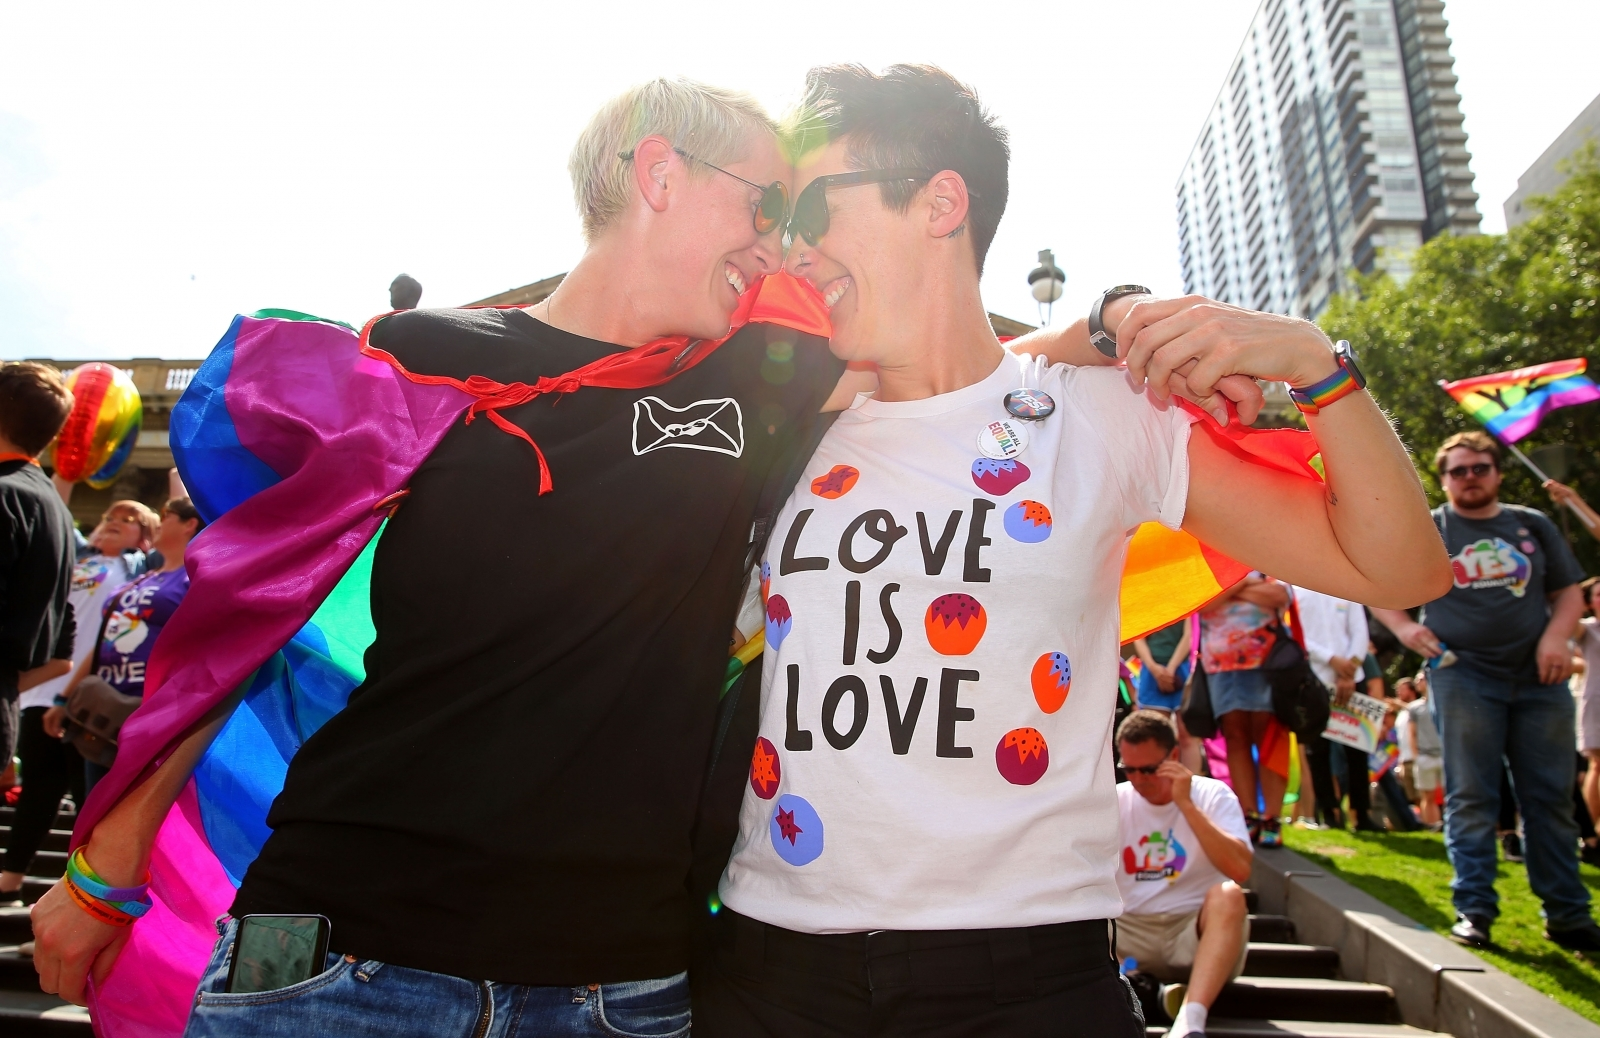 Australia marriage equality